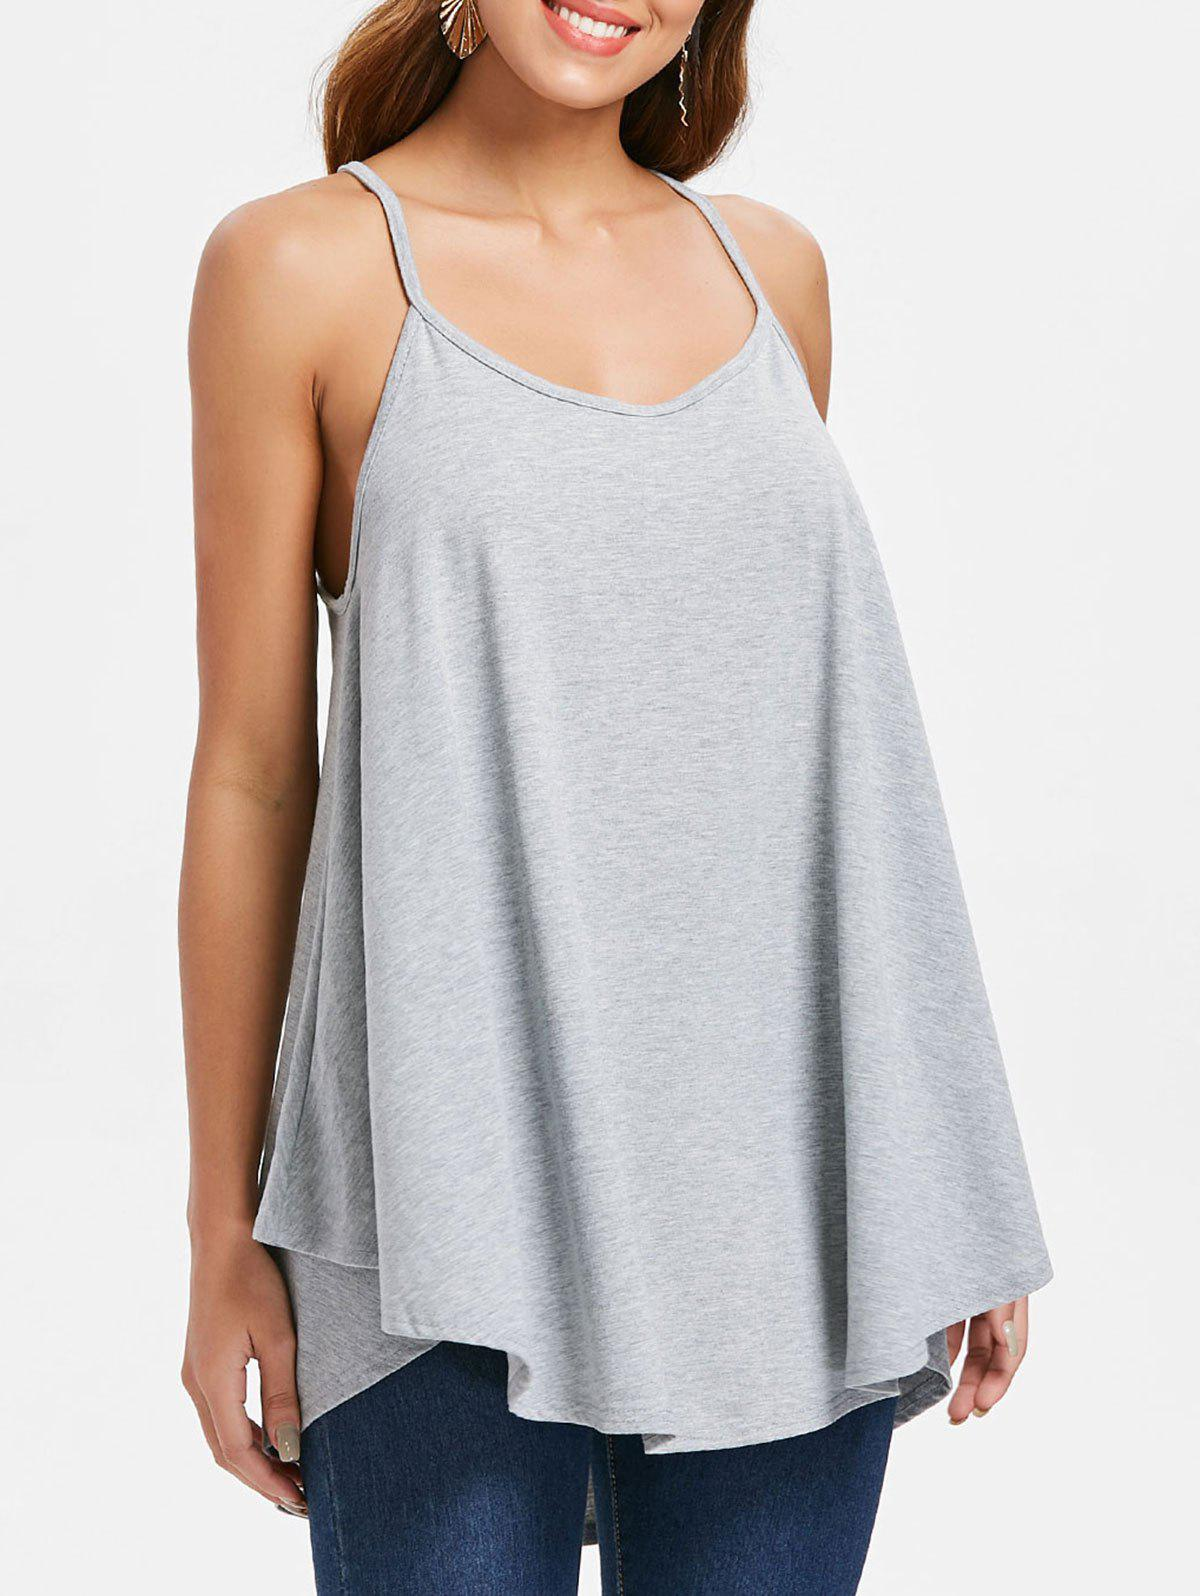 Store Plain Tunic Tank Top